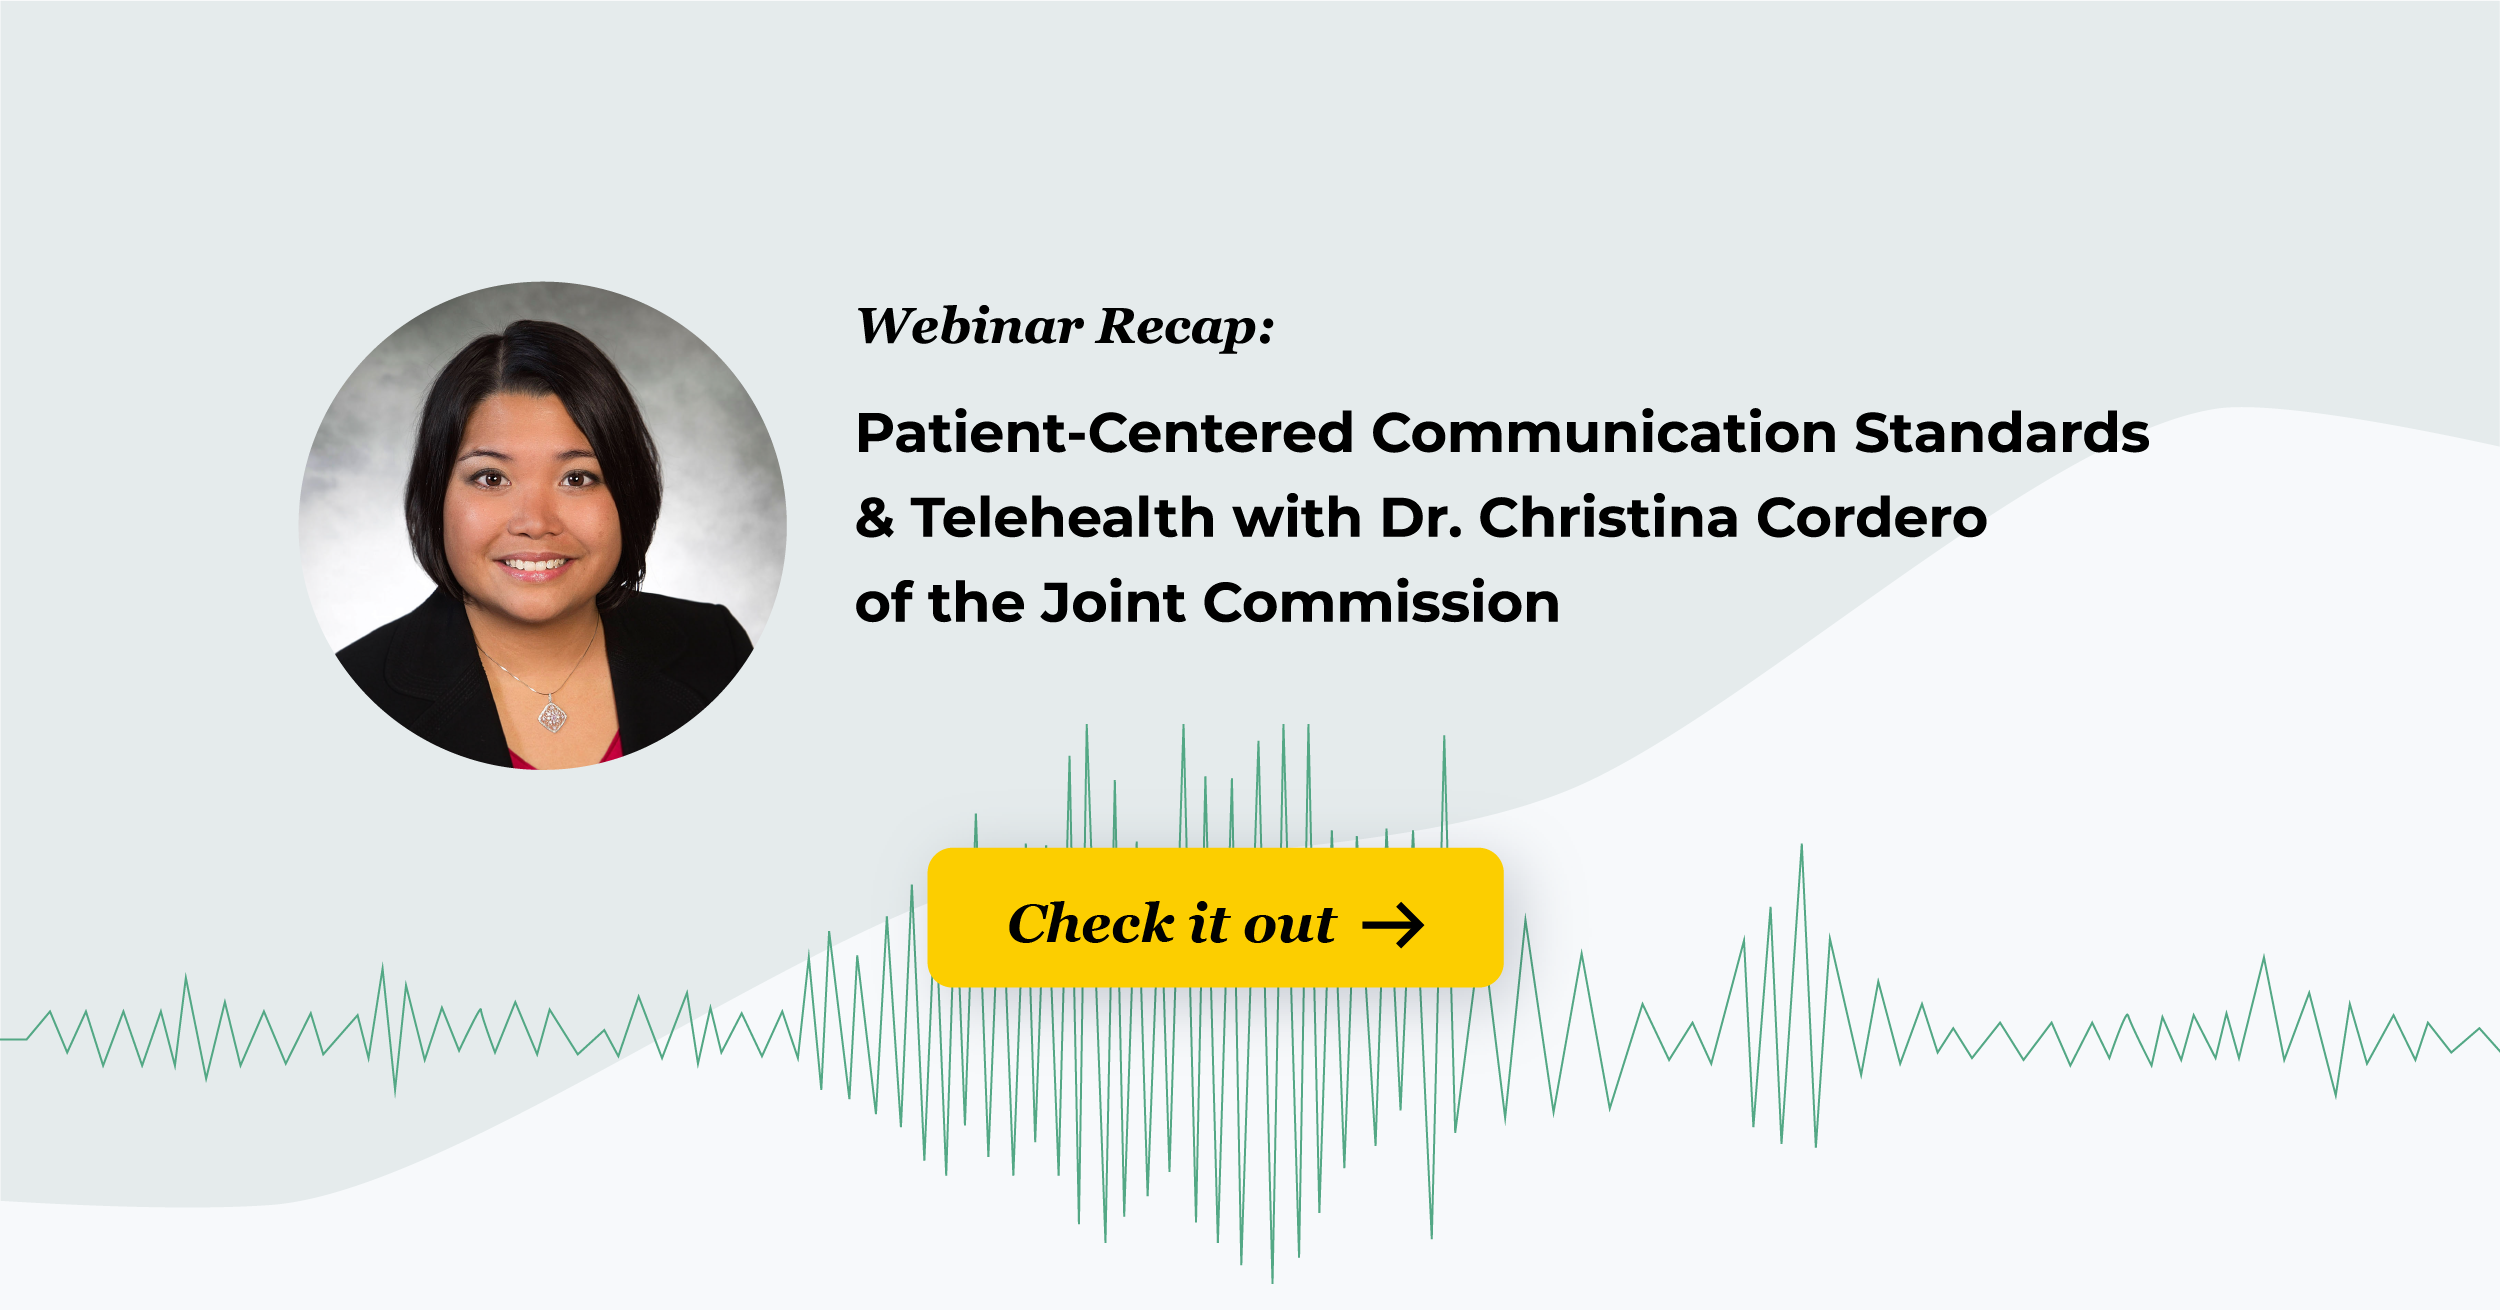 Webinar Recap: Patient-Centered Communication Standards & Telehealth